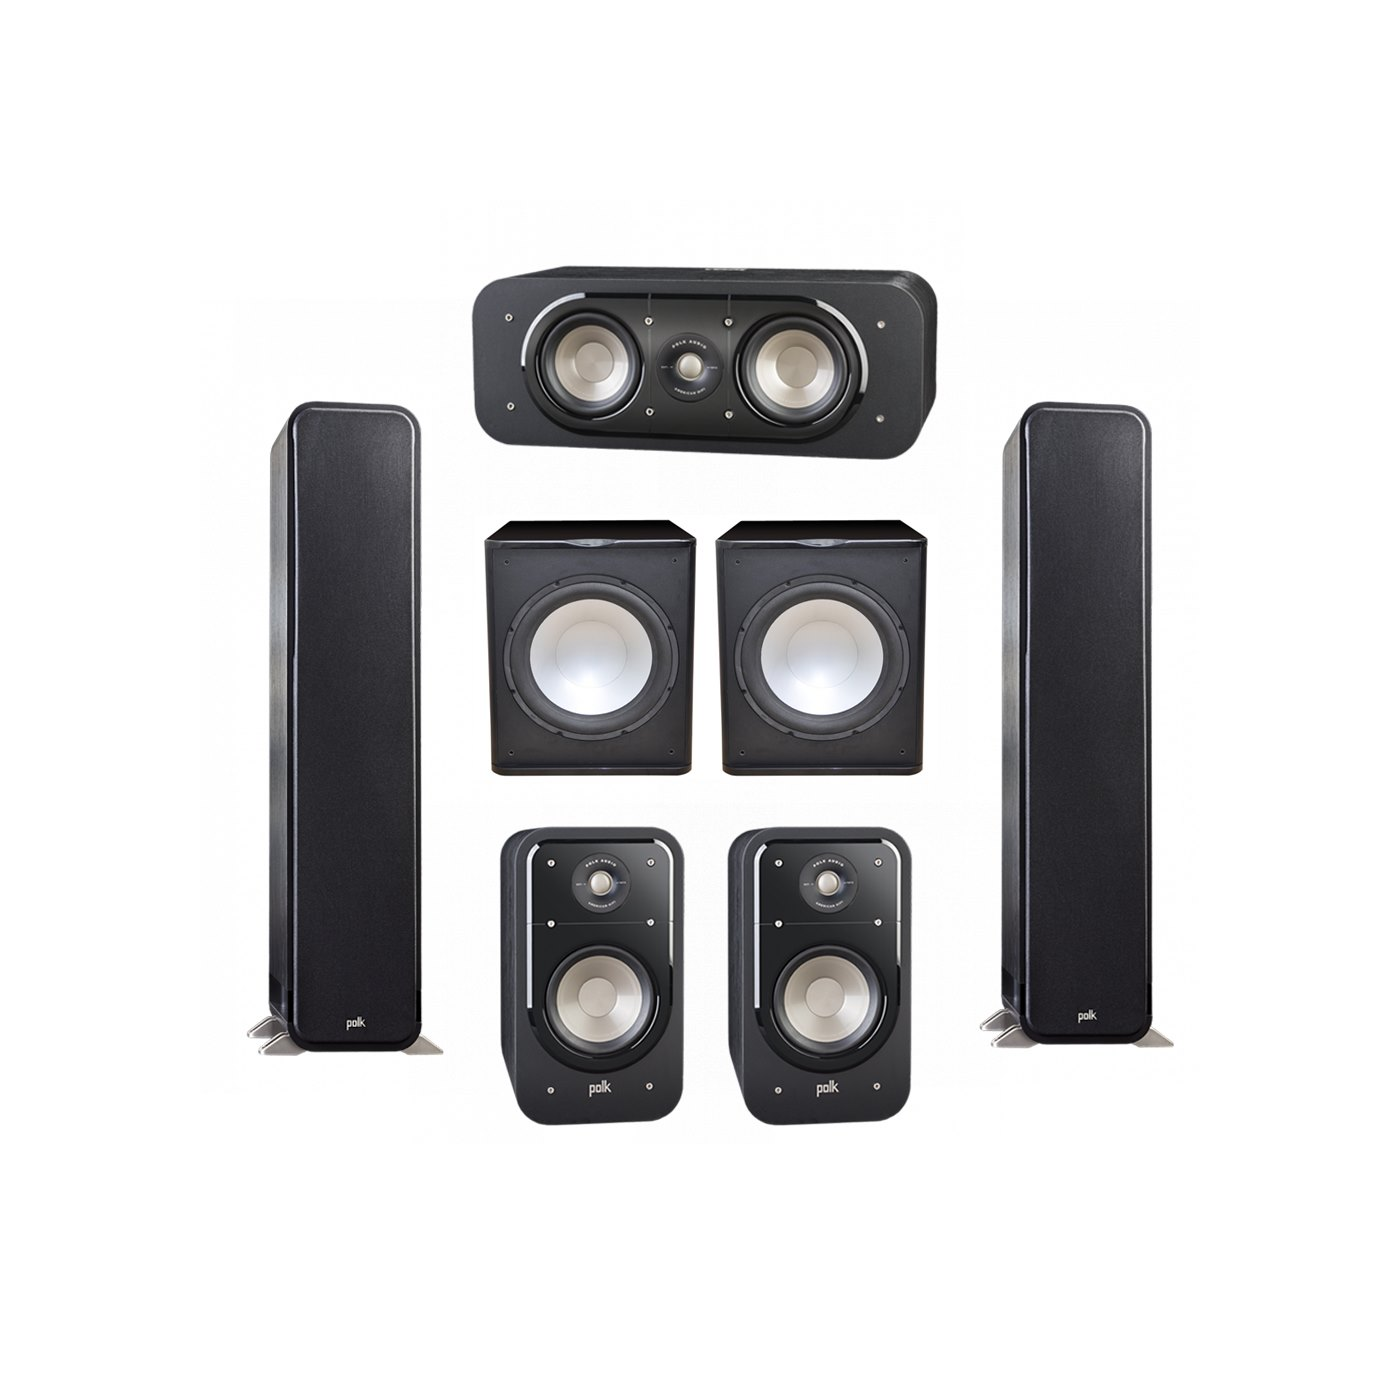 Polk Audio Signature 5.2 System with 2 S55 Tower Speaker, 1 Polk S30 Center Speaker, 2 Polk S20 Bookshelf Speaker, 2 Premier Acoustic PA-150 Powered Subwoofer